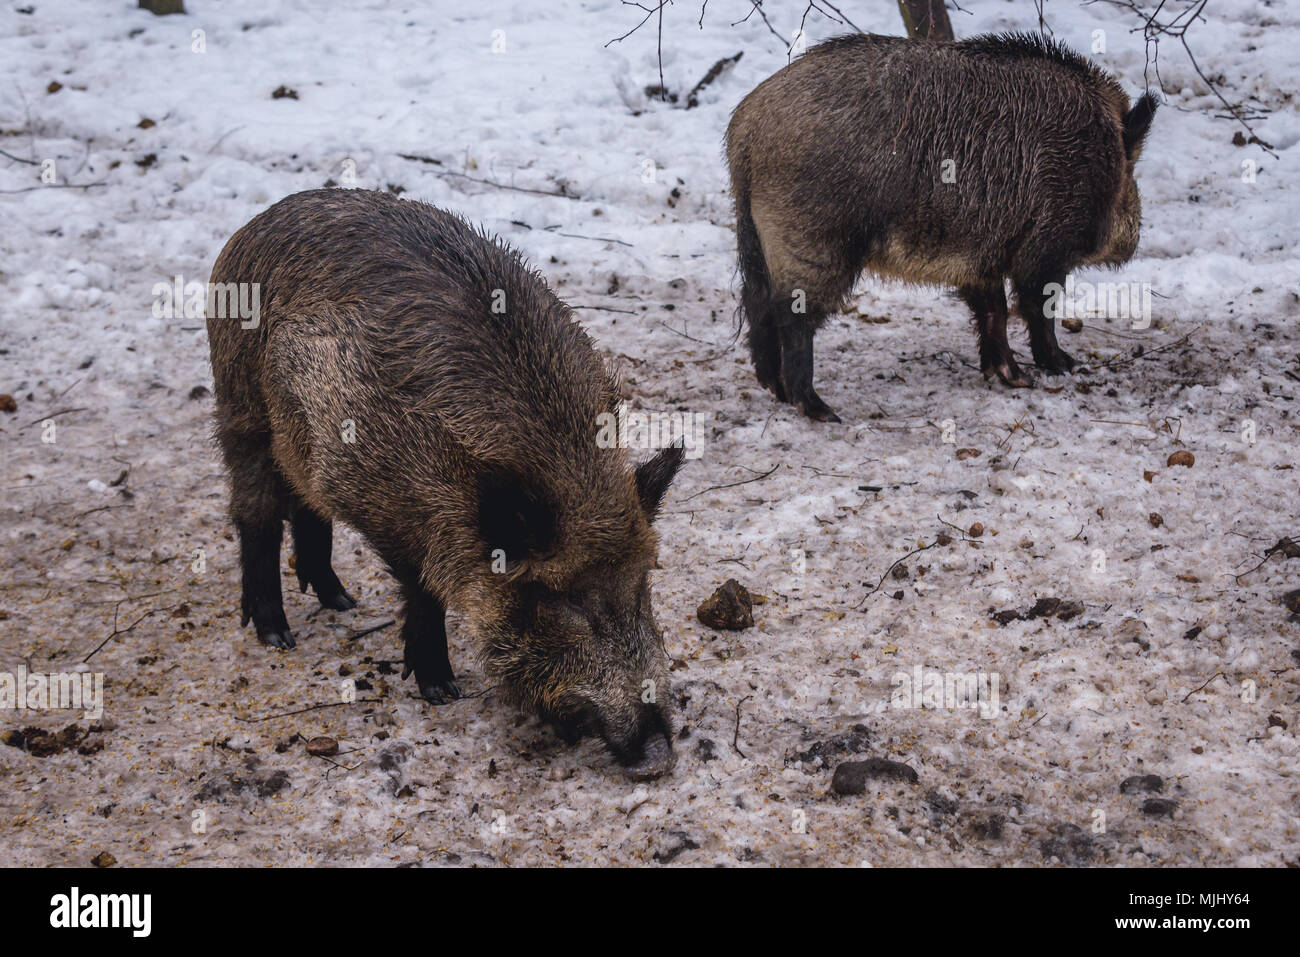 Wild boars in animal Show Reserve in Bialowieza village located in the middle of Bialowieza Forest, Podlaskie Voivodeship of Poland - Stock Image